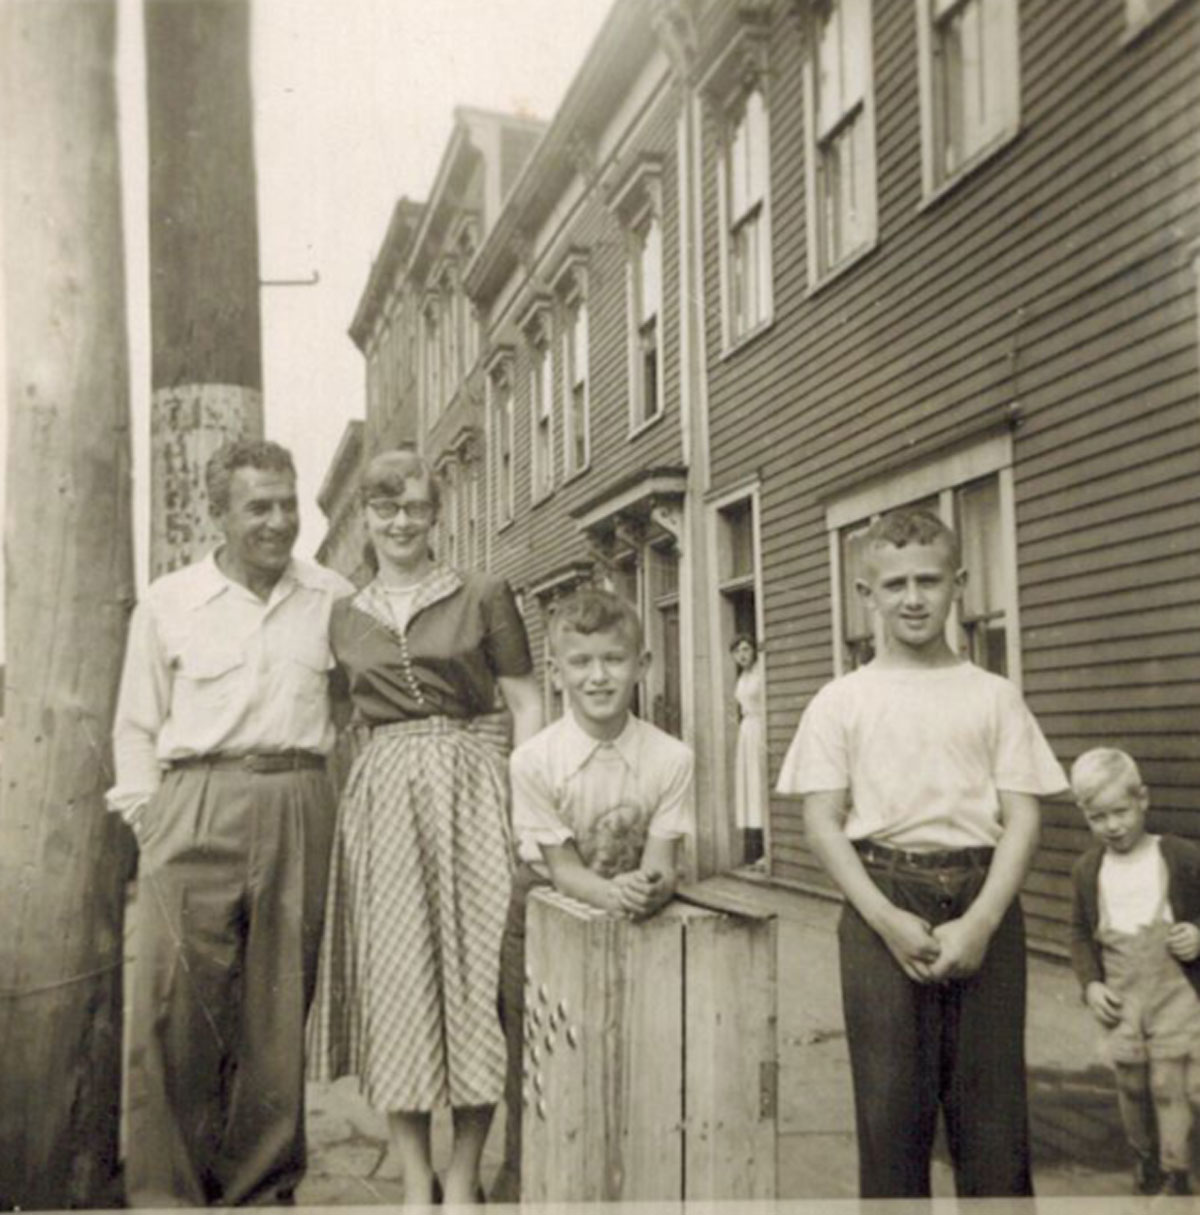 Photograph of M. Fred Tobias, Laura Tobias, Ken Tobias, and Tony Tobias.